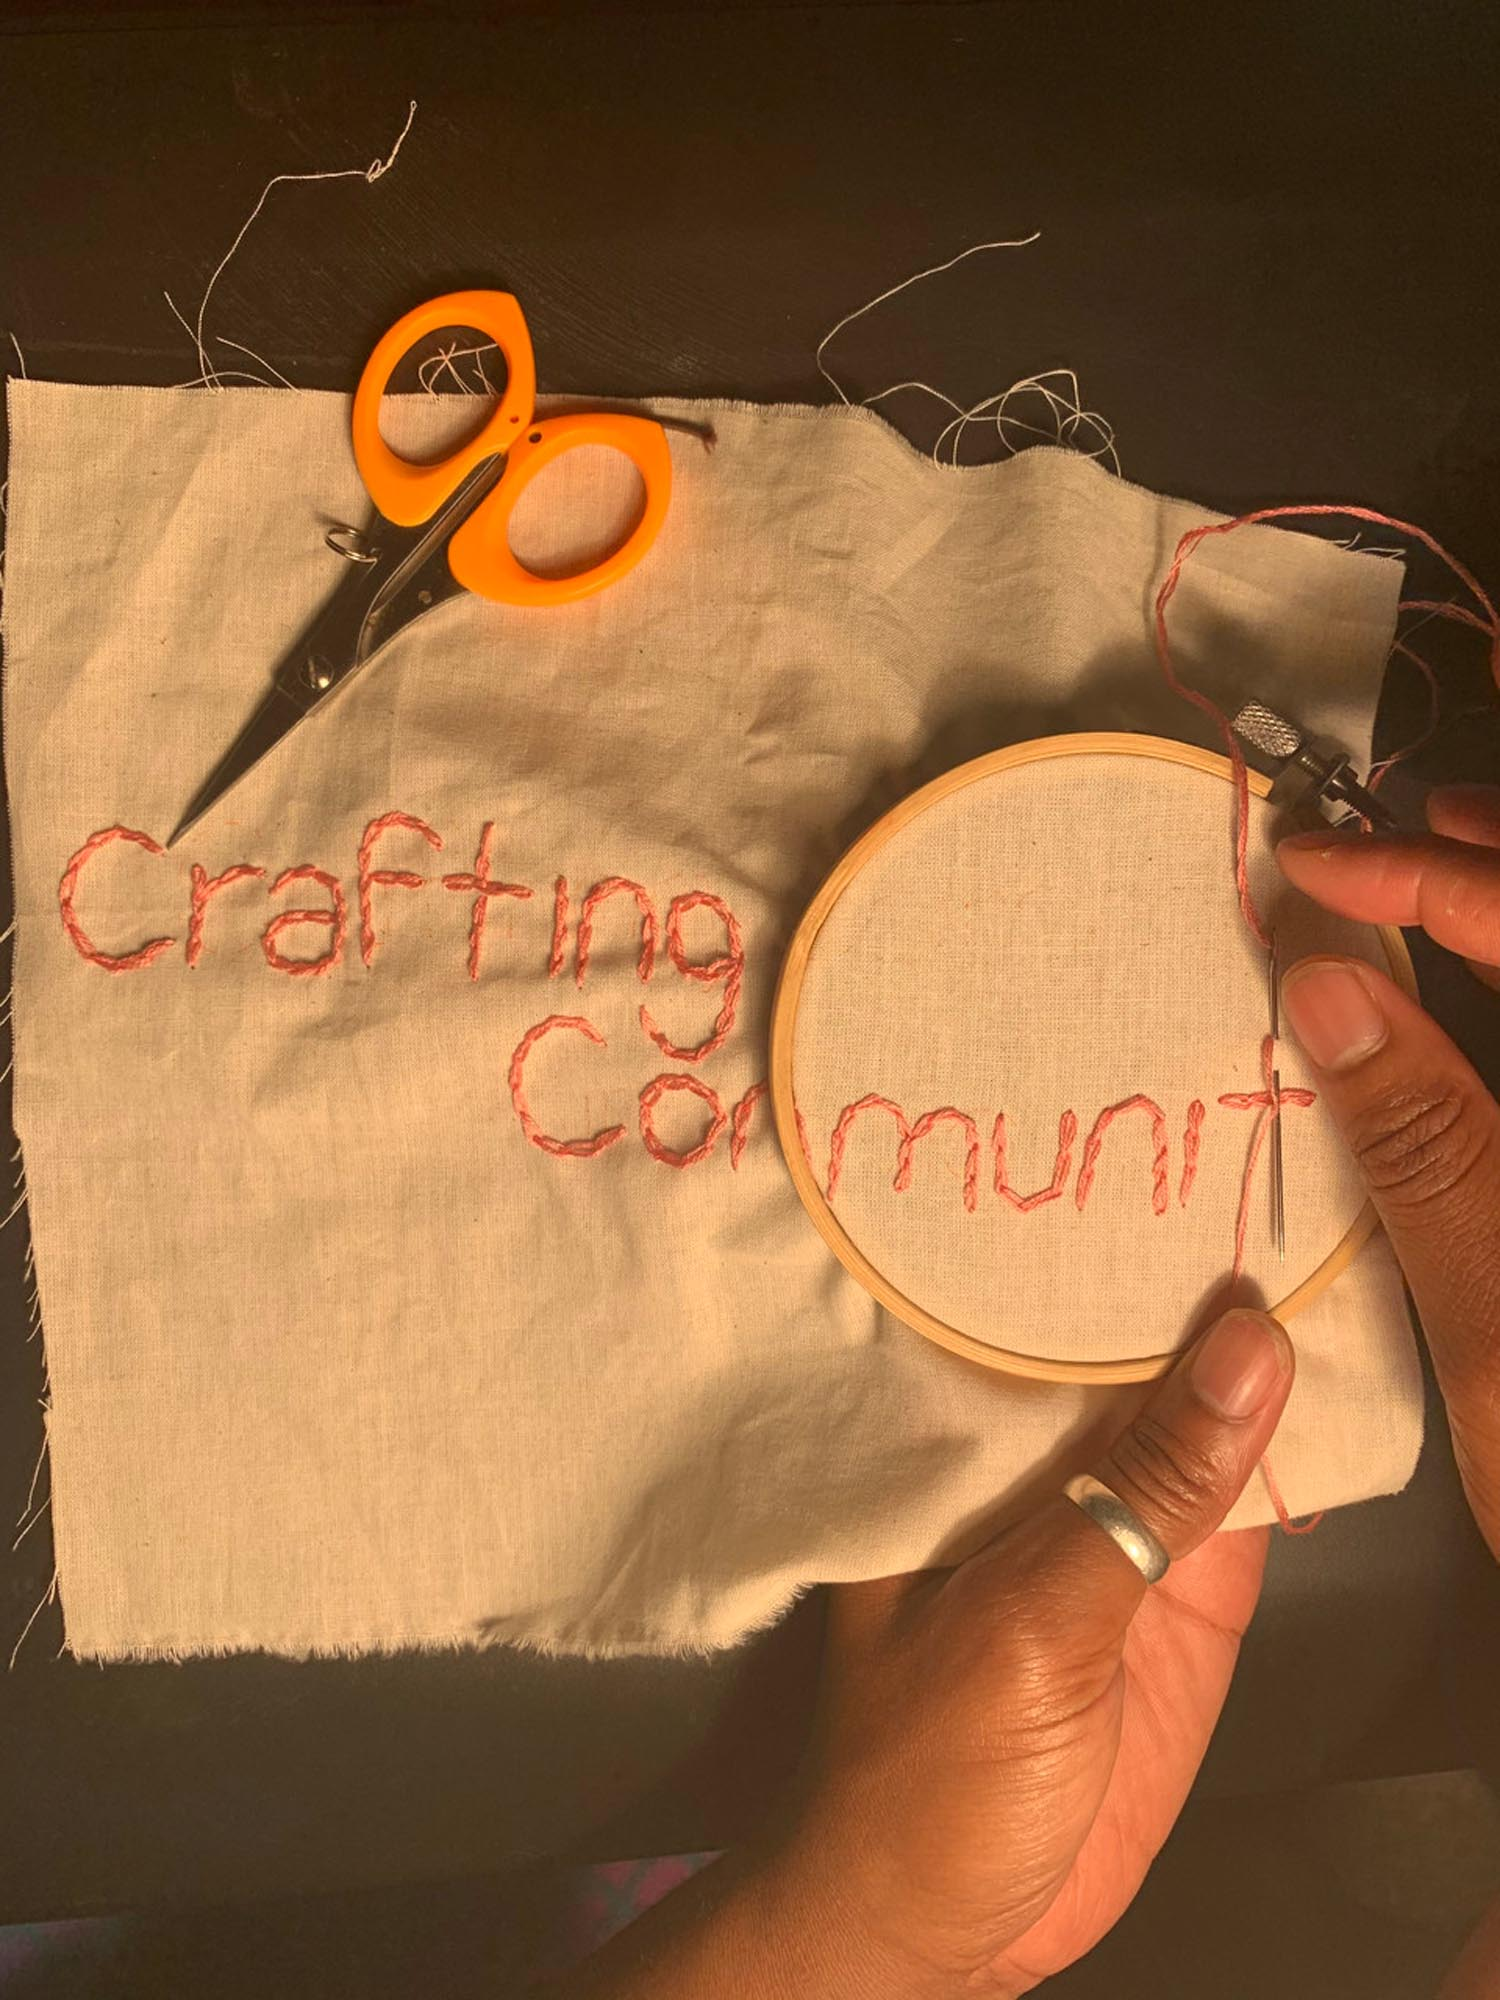 Brown Hand chain stitch the words Crafting Community into a plain muslin fabric with pink thread. Orange handled scissors lie on the table nearby.